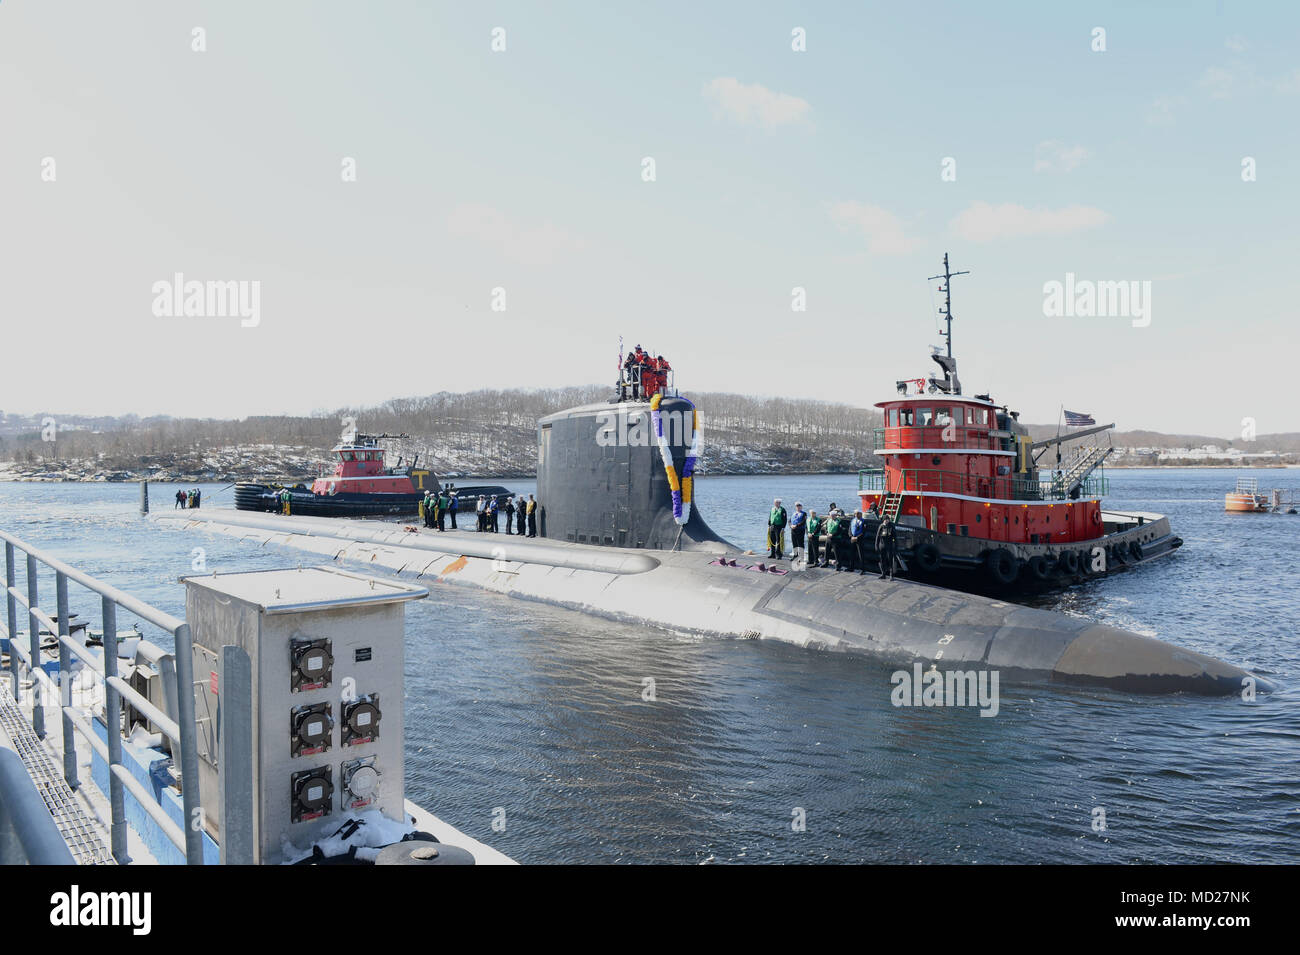 180314-N-LW591-010 GROTON, Conn. (Mar. 14, 2018) Sailors assigned to the Virginia-class, nuclear-powered, fast-attack submarine, USS Minnesota (SSN-783),  stand topside as their friends and families cheer their arrival as Minnesota pulls into its homeport on Naval Submarine Base New London in Groton, Conn., on Wednesday 14, Mar. Minnesota is returning from the European Command Area of Responsibility where they executed the Chief of Naval Operation's Maritime Strategy in supporting national security interests and Maritime Security Operations. (U.S. Navy photo by Mass Communication Specialist 1s - Stock Image